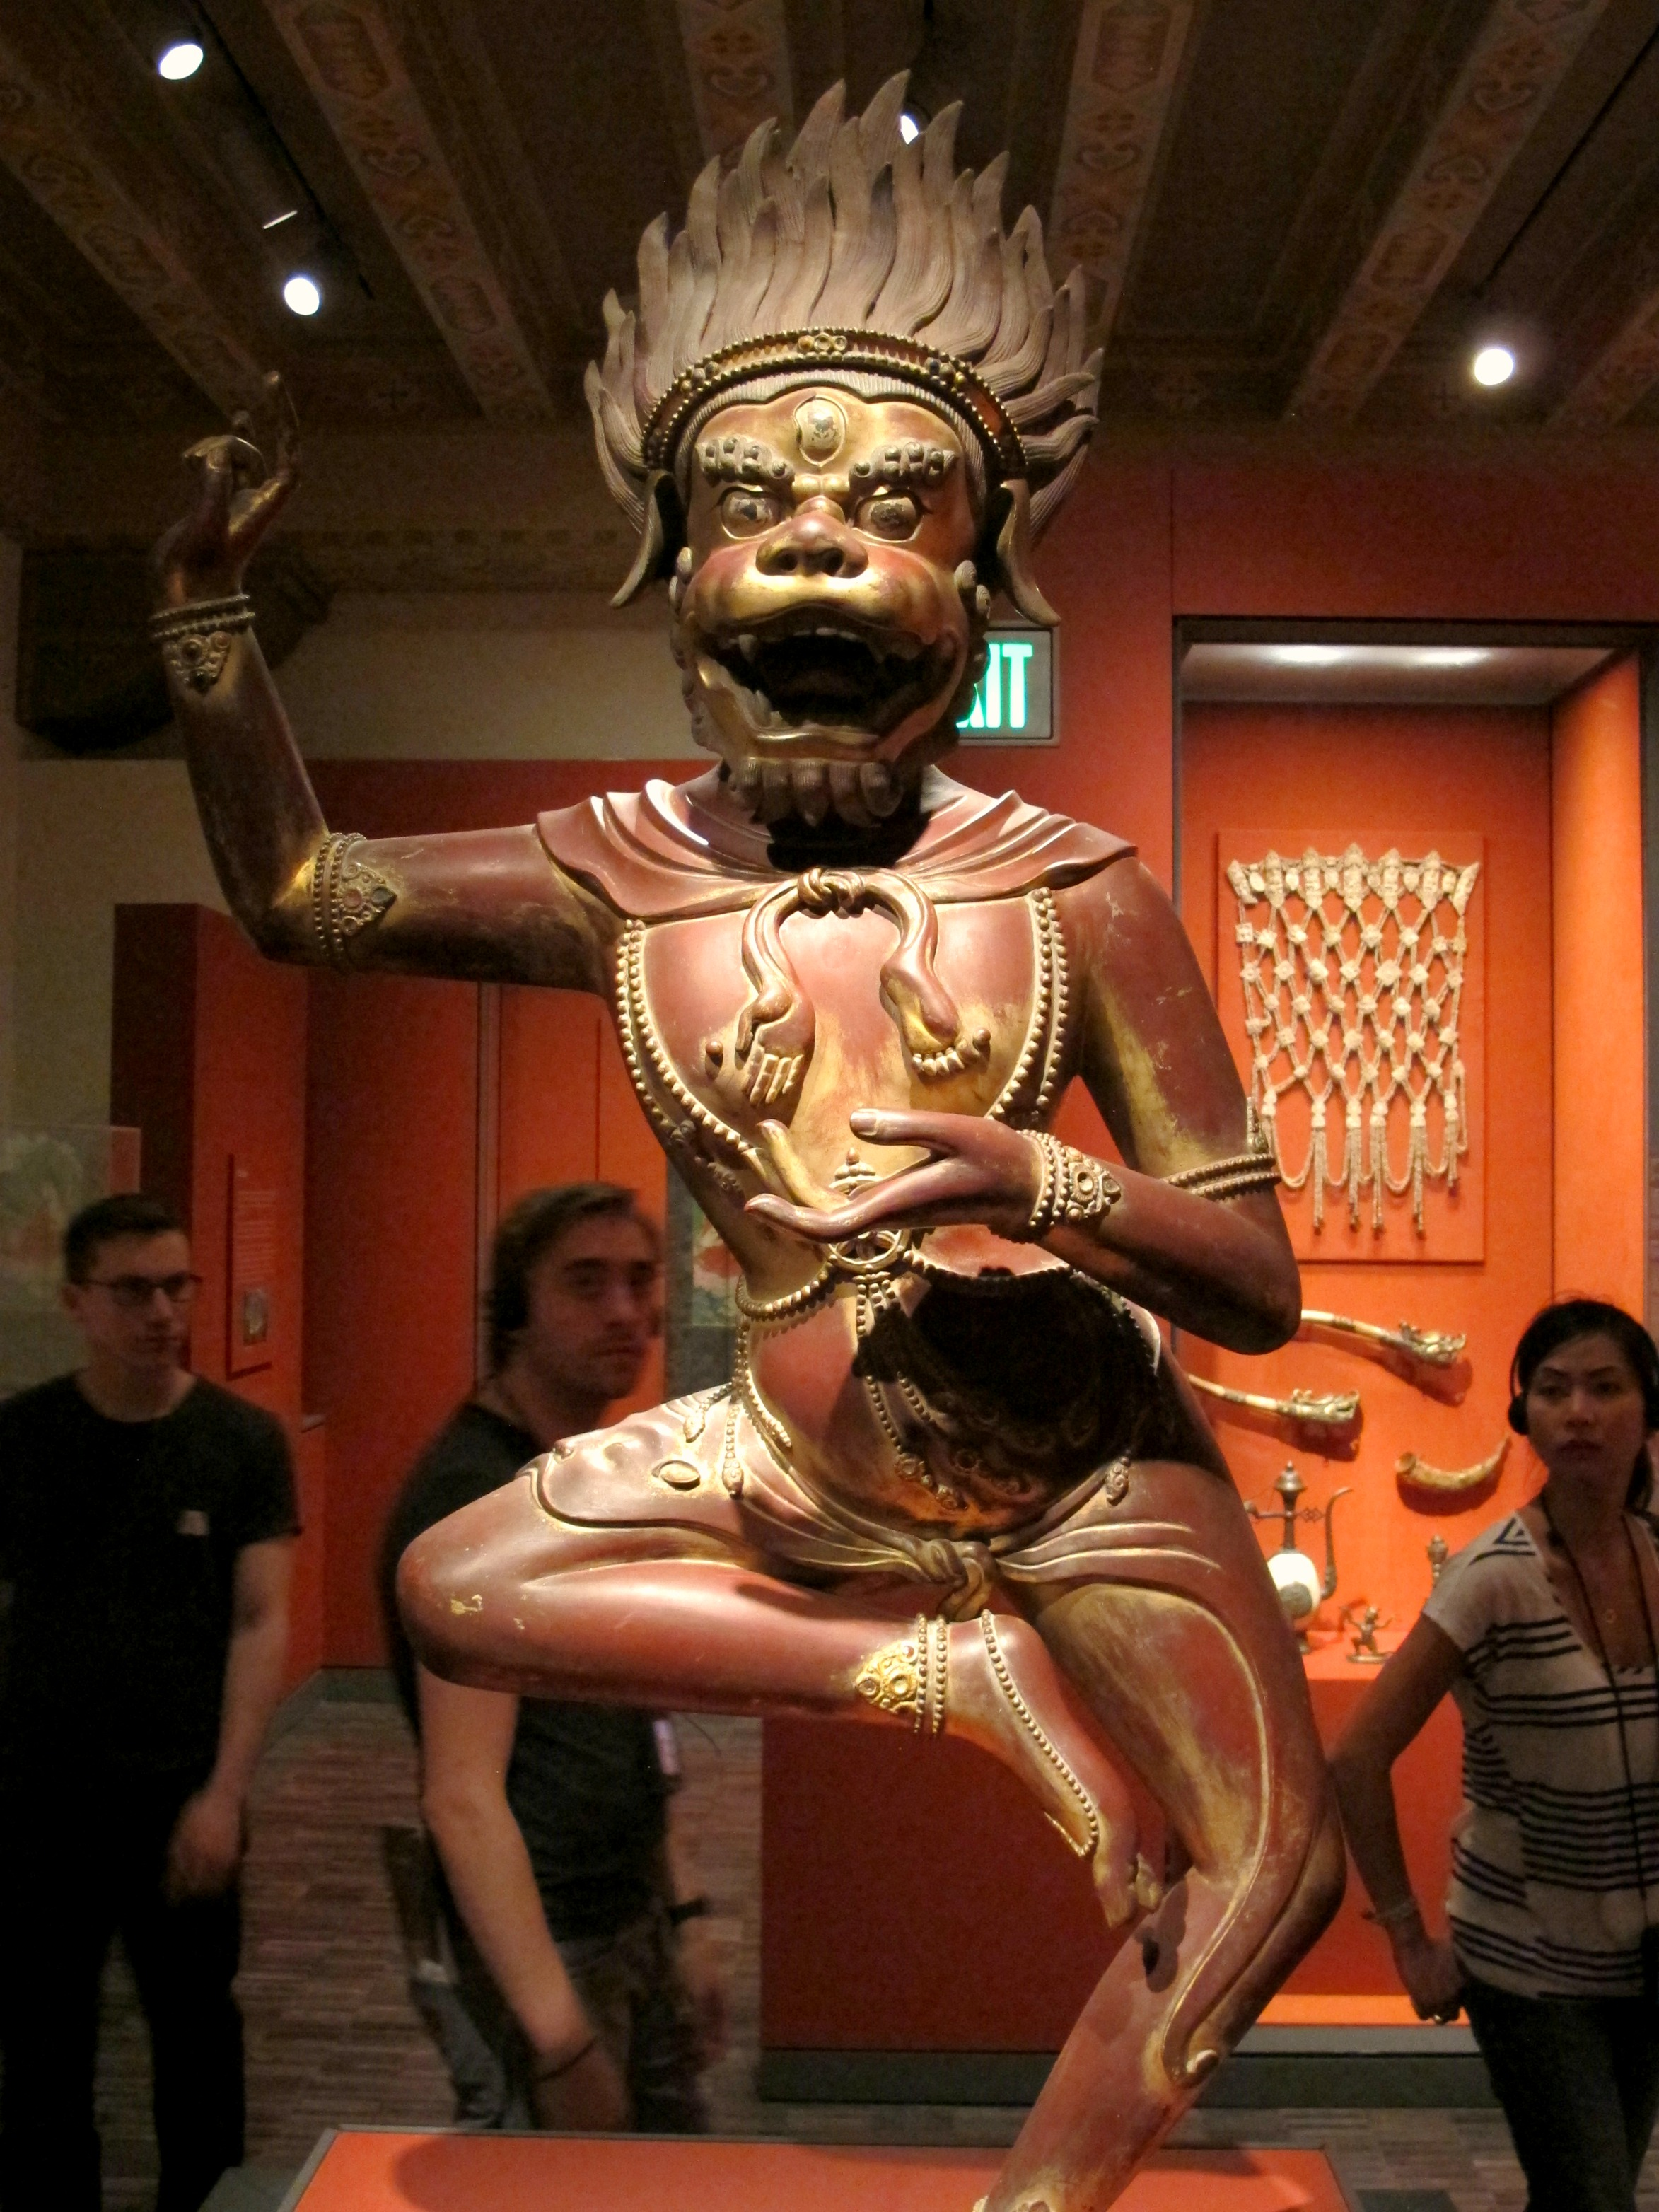 Highlights From the Asian Art Museum – I am a writer